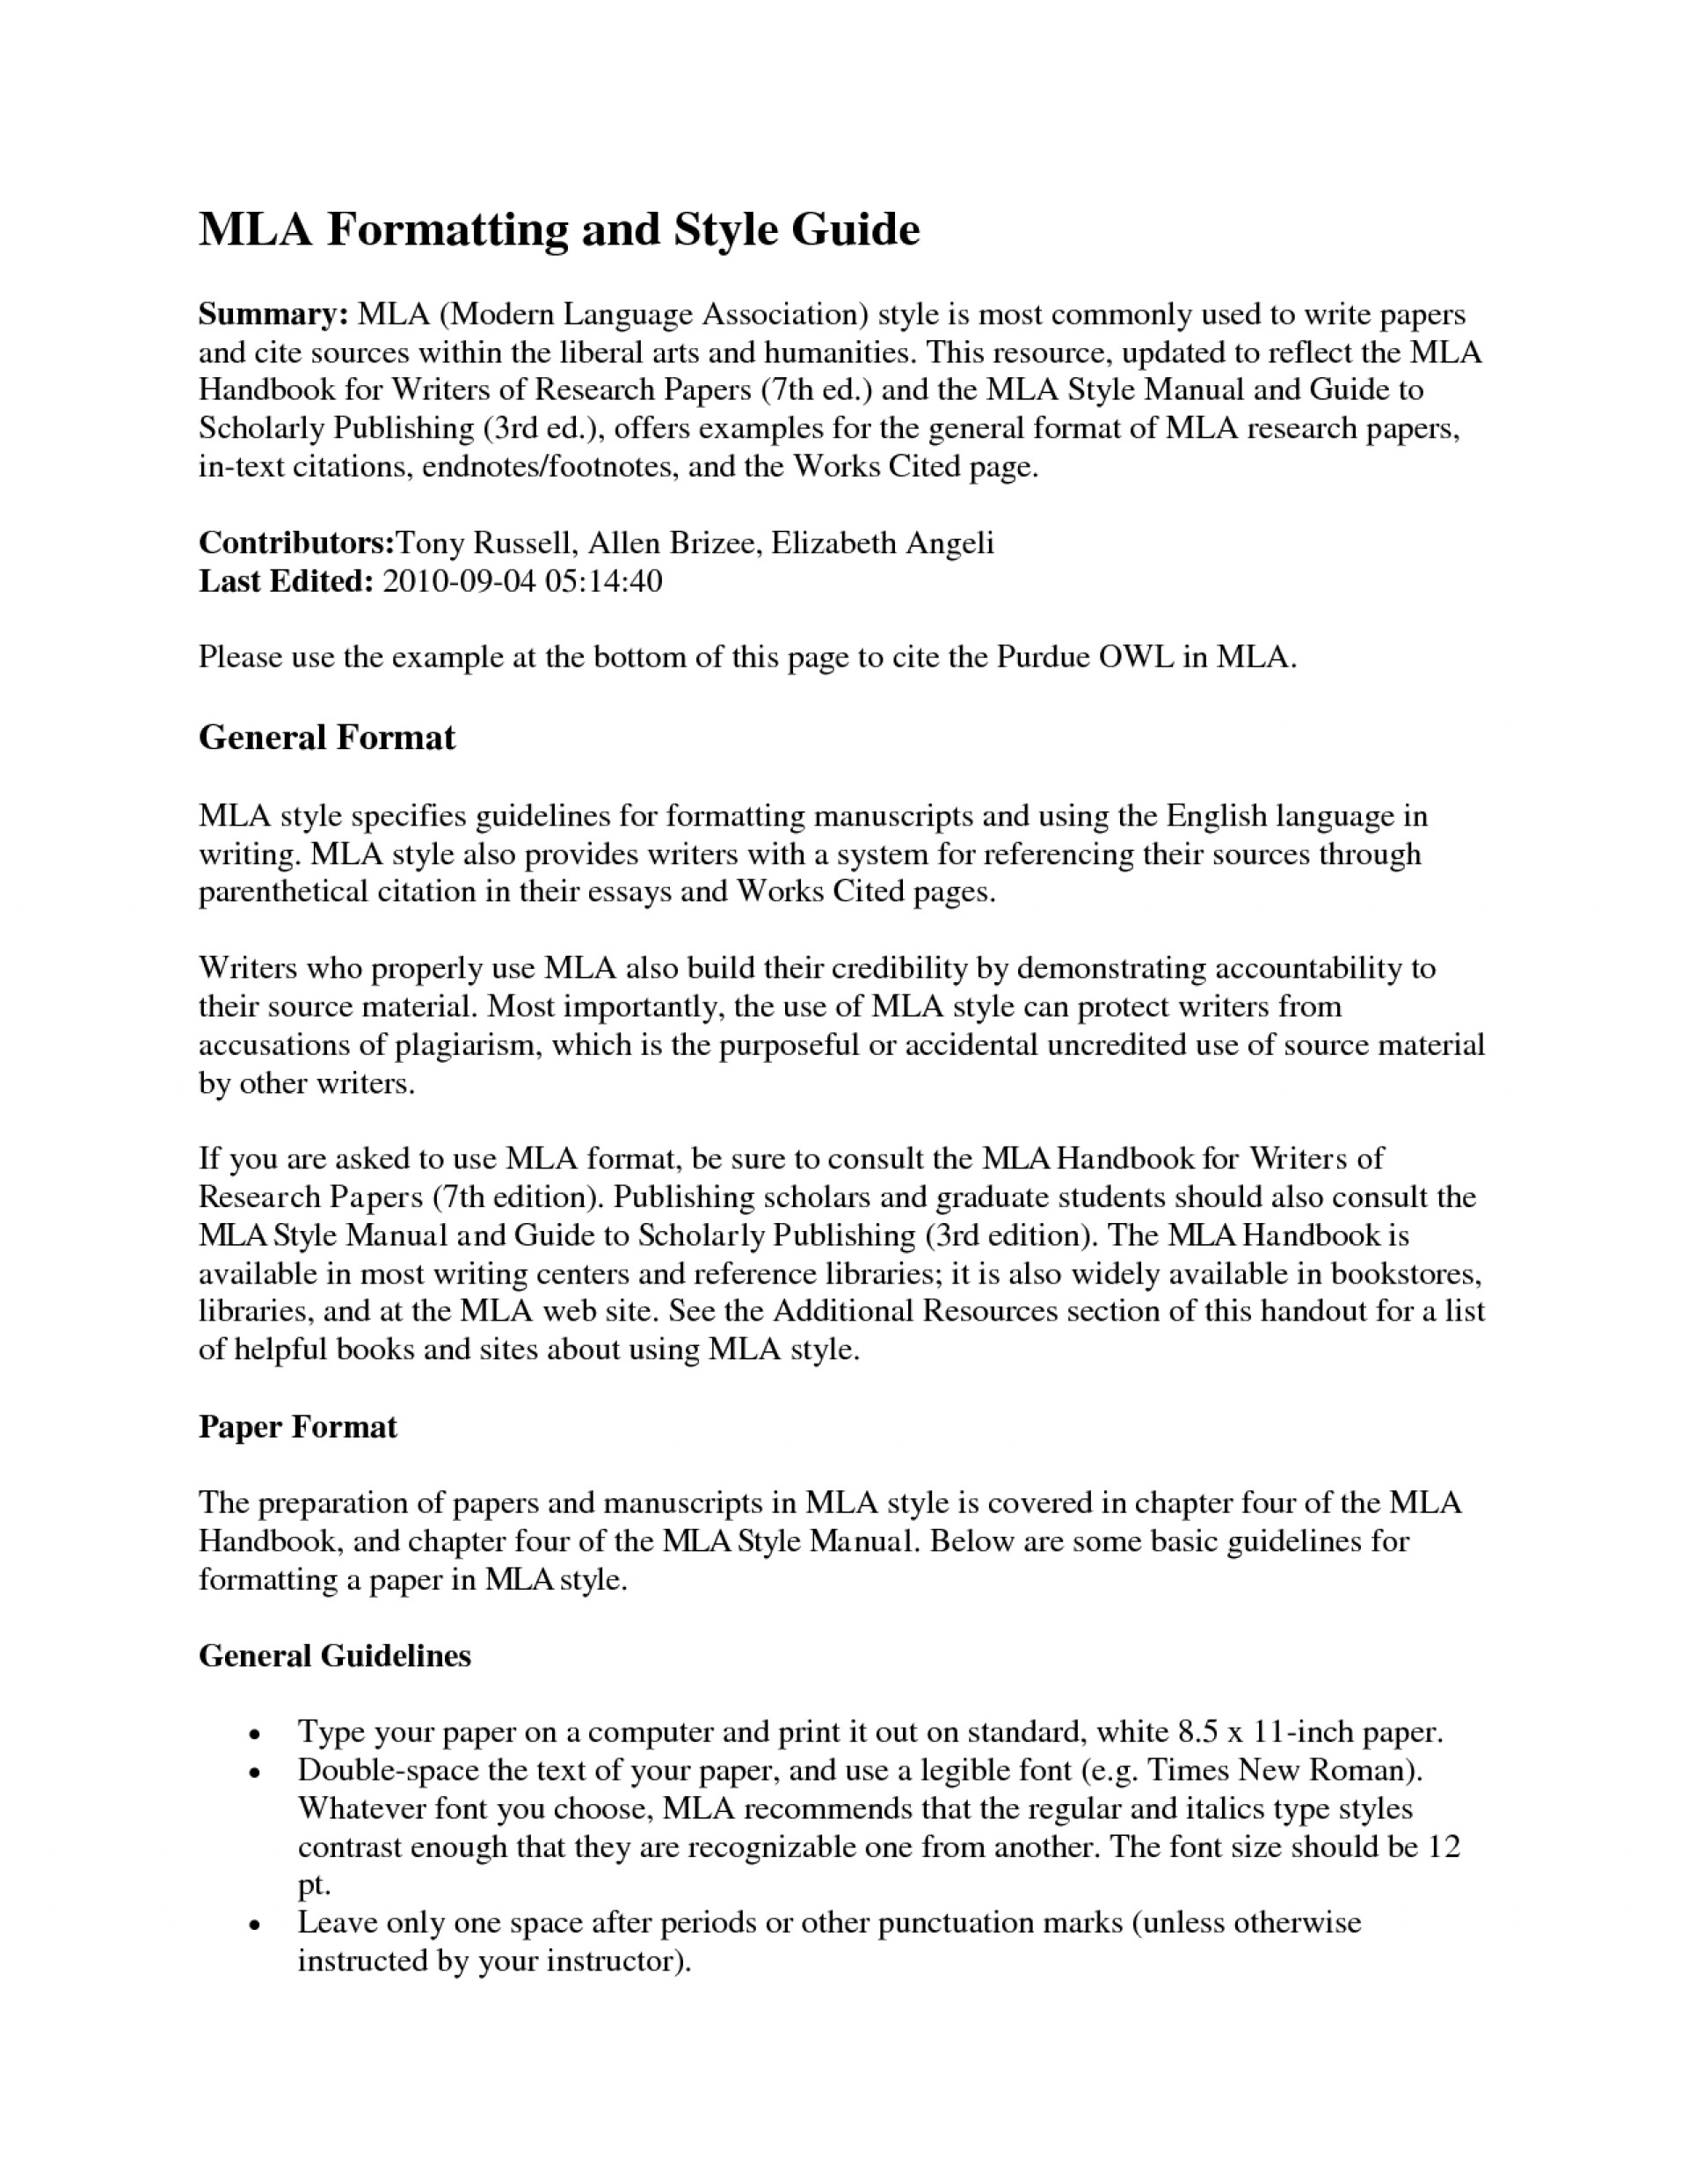 018 Mla Essay Headings Format Section Example Heading Proper For Title Italicized Underlined Paper Page In Multiple Authors Archaicawful Research Works Cited College 1920